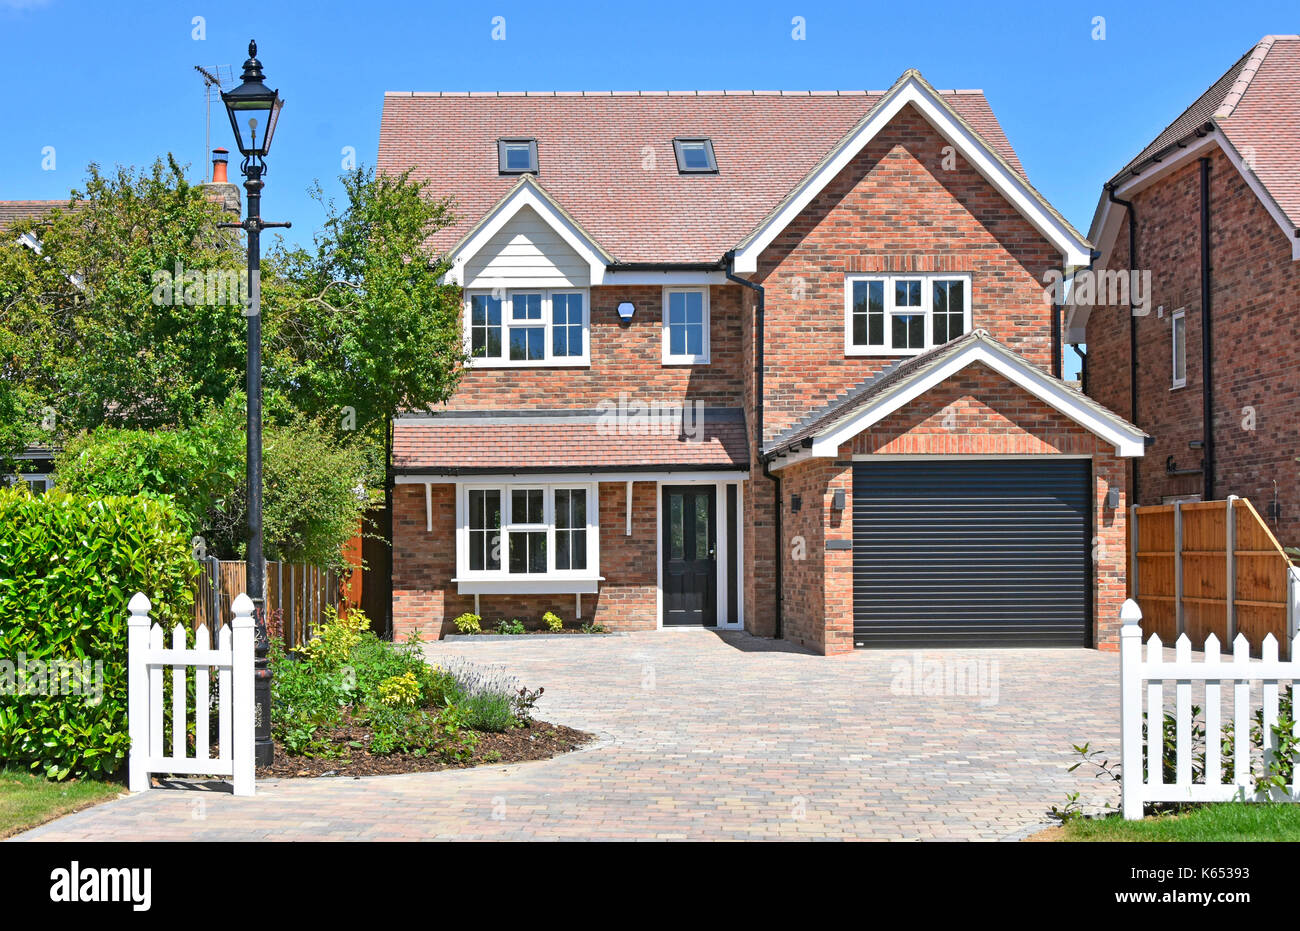 Detached houses uk stock photos detached houses uk stock for 5 bedroom new build homes